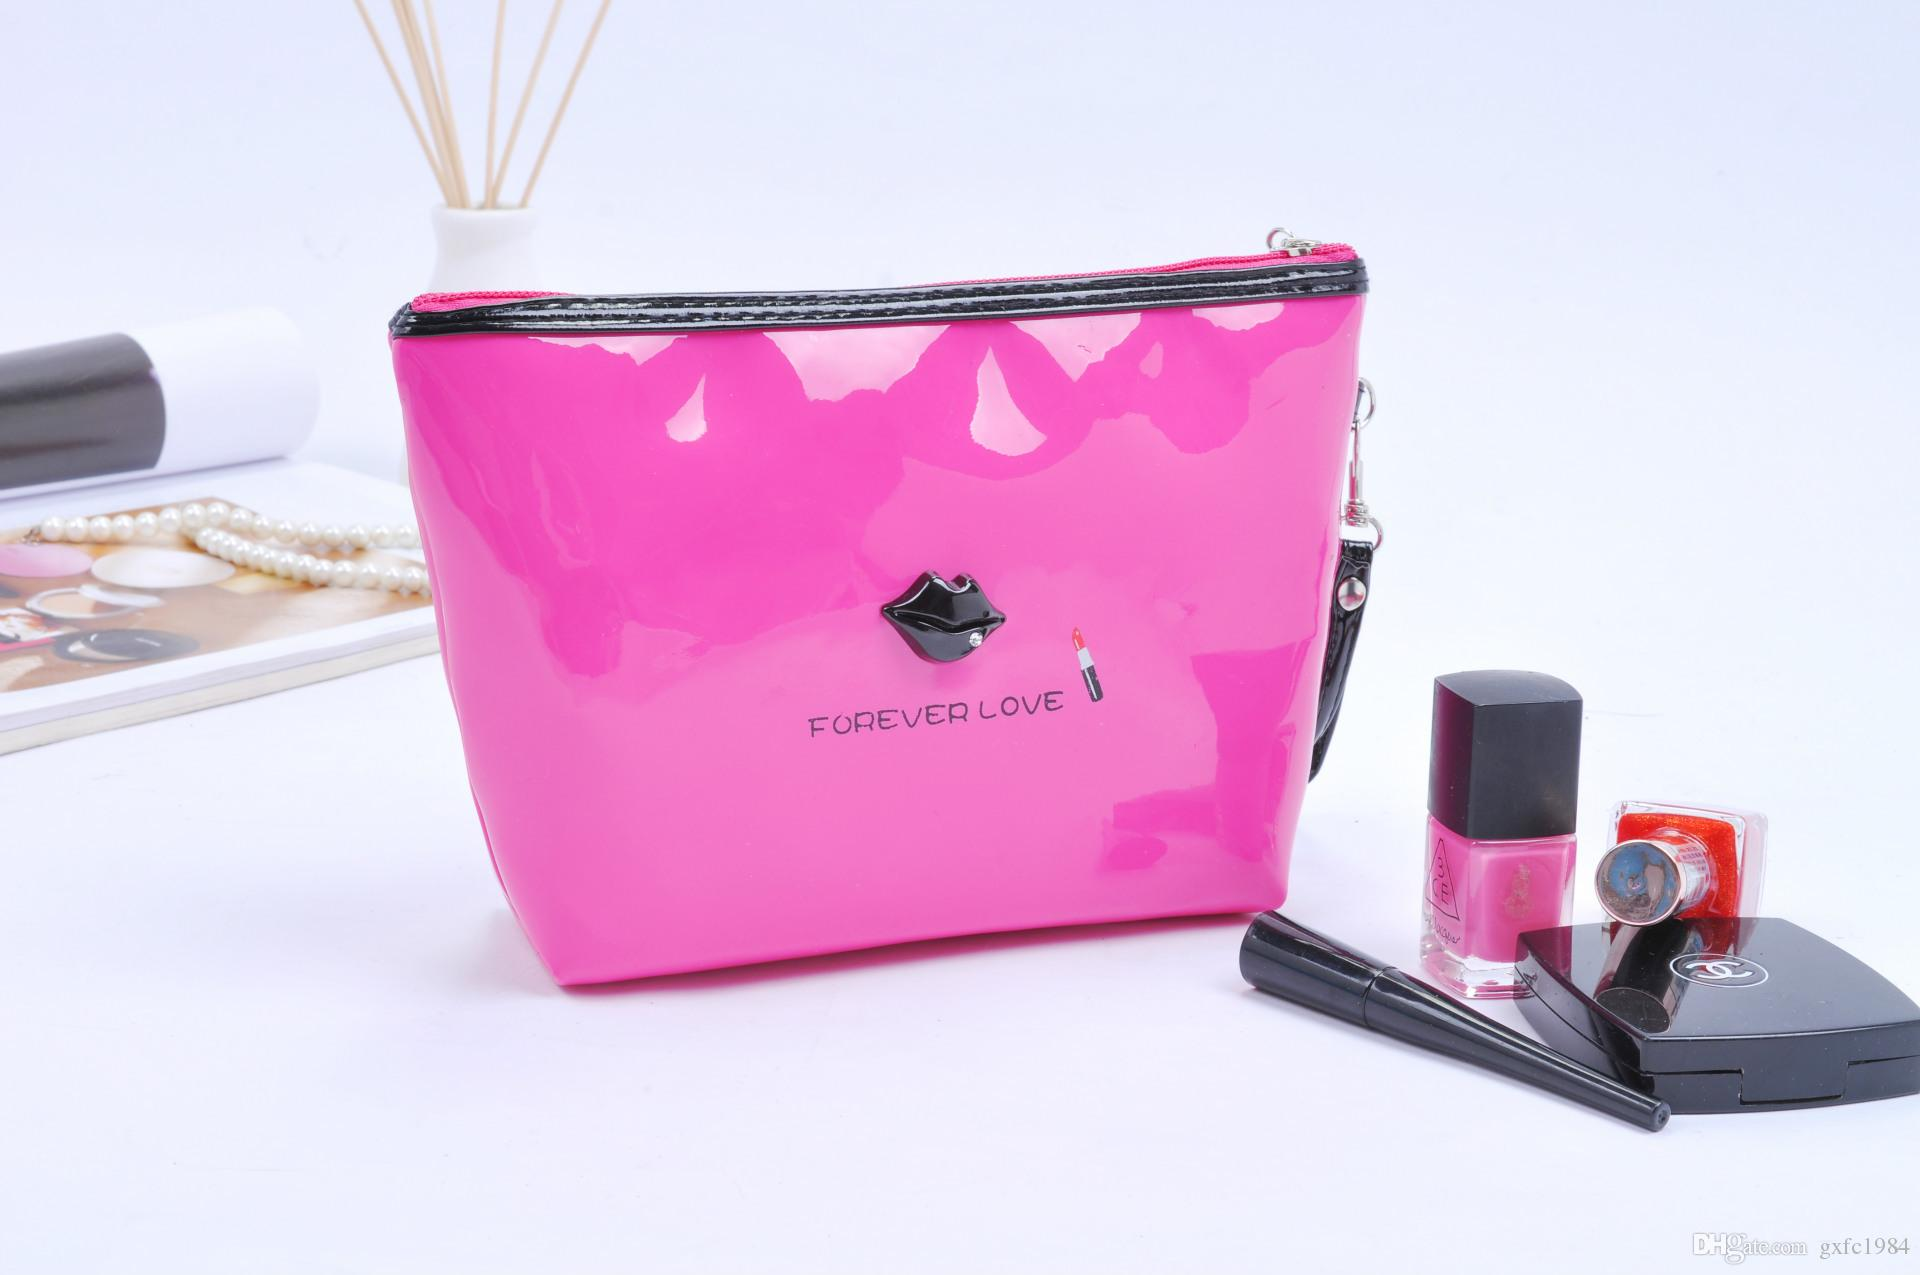 New La s Handbag Korean Version of the Portable Travel Multi function Storage Bag Fashion Lips Wash Cosmetic Bag Cosmetic Bag La s Handbag Travel